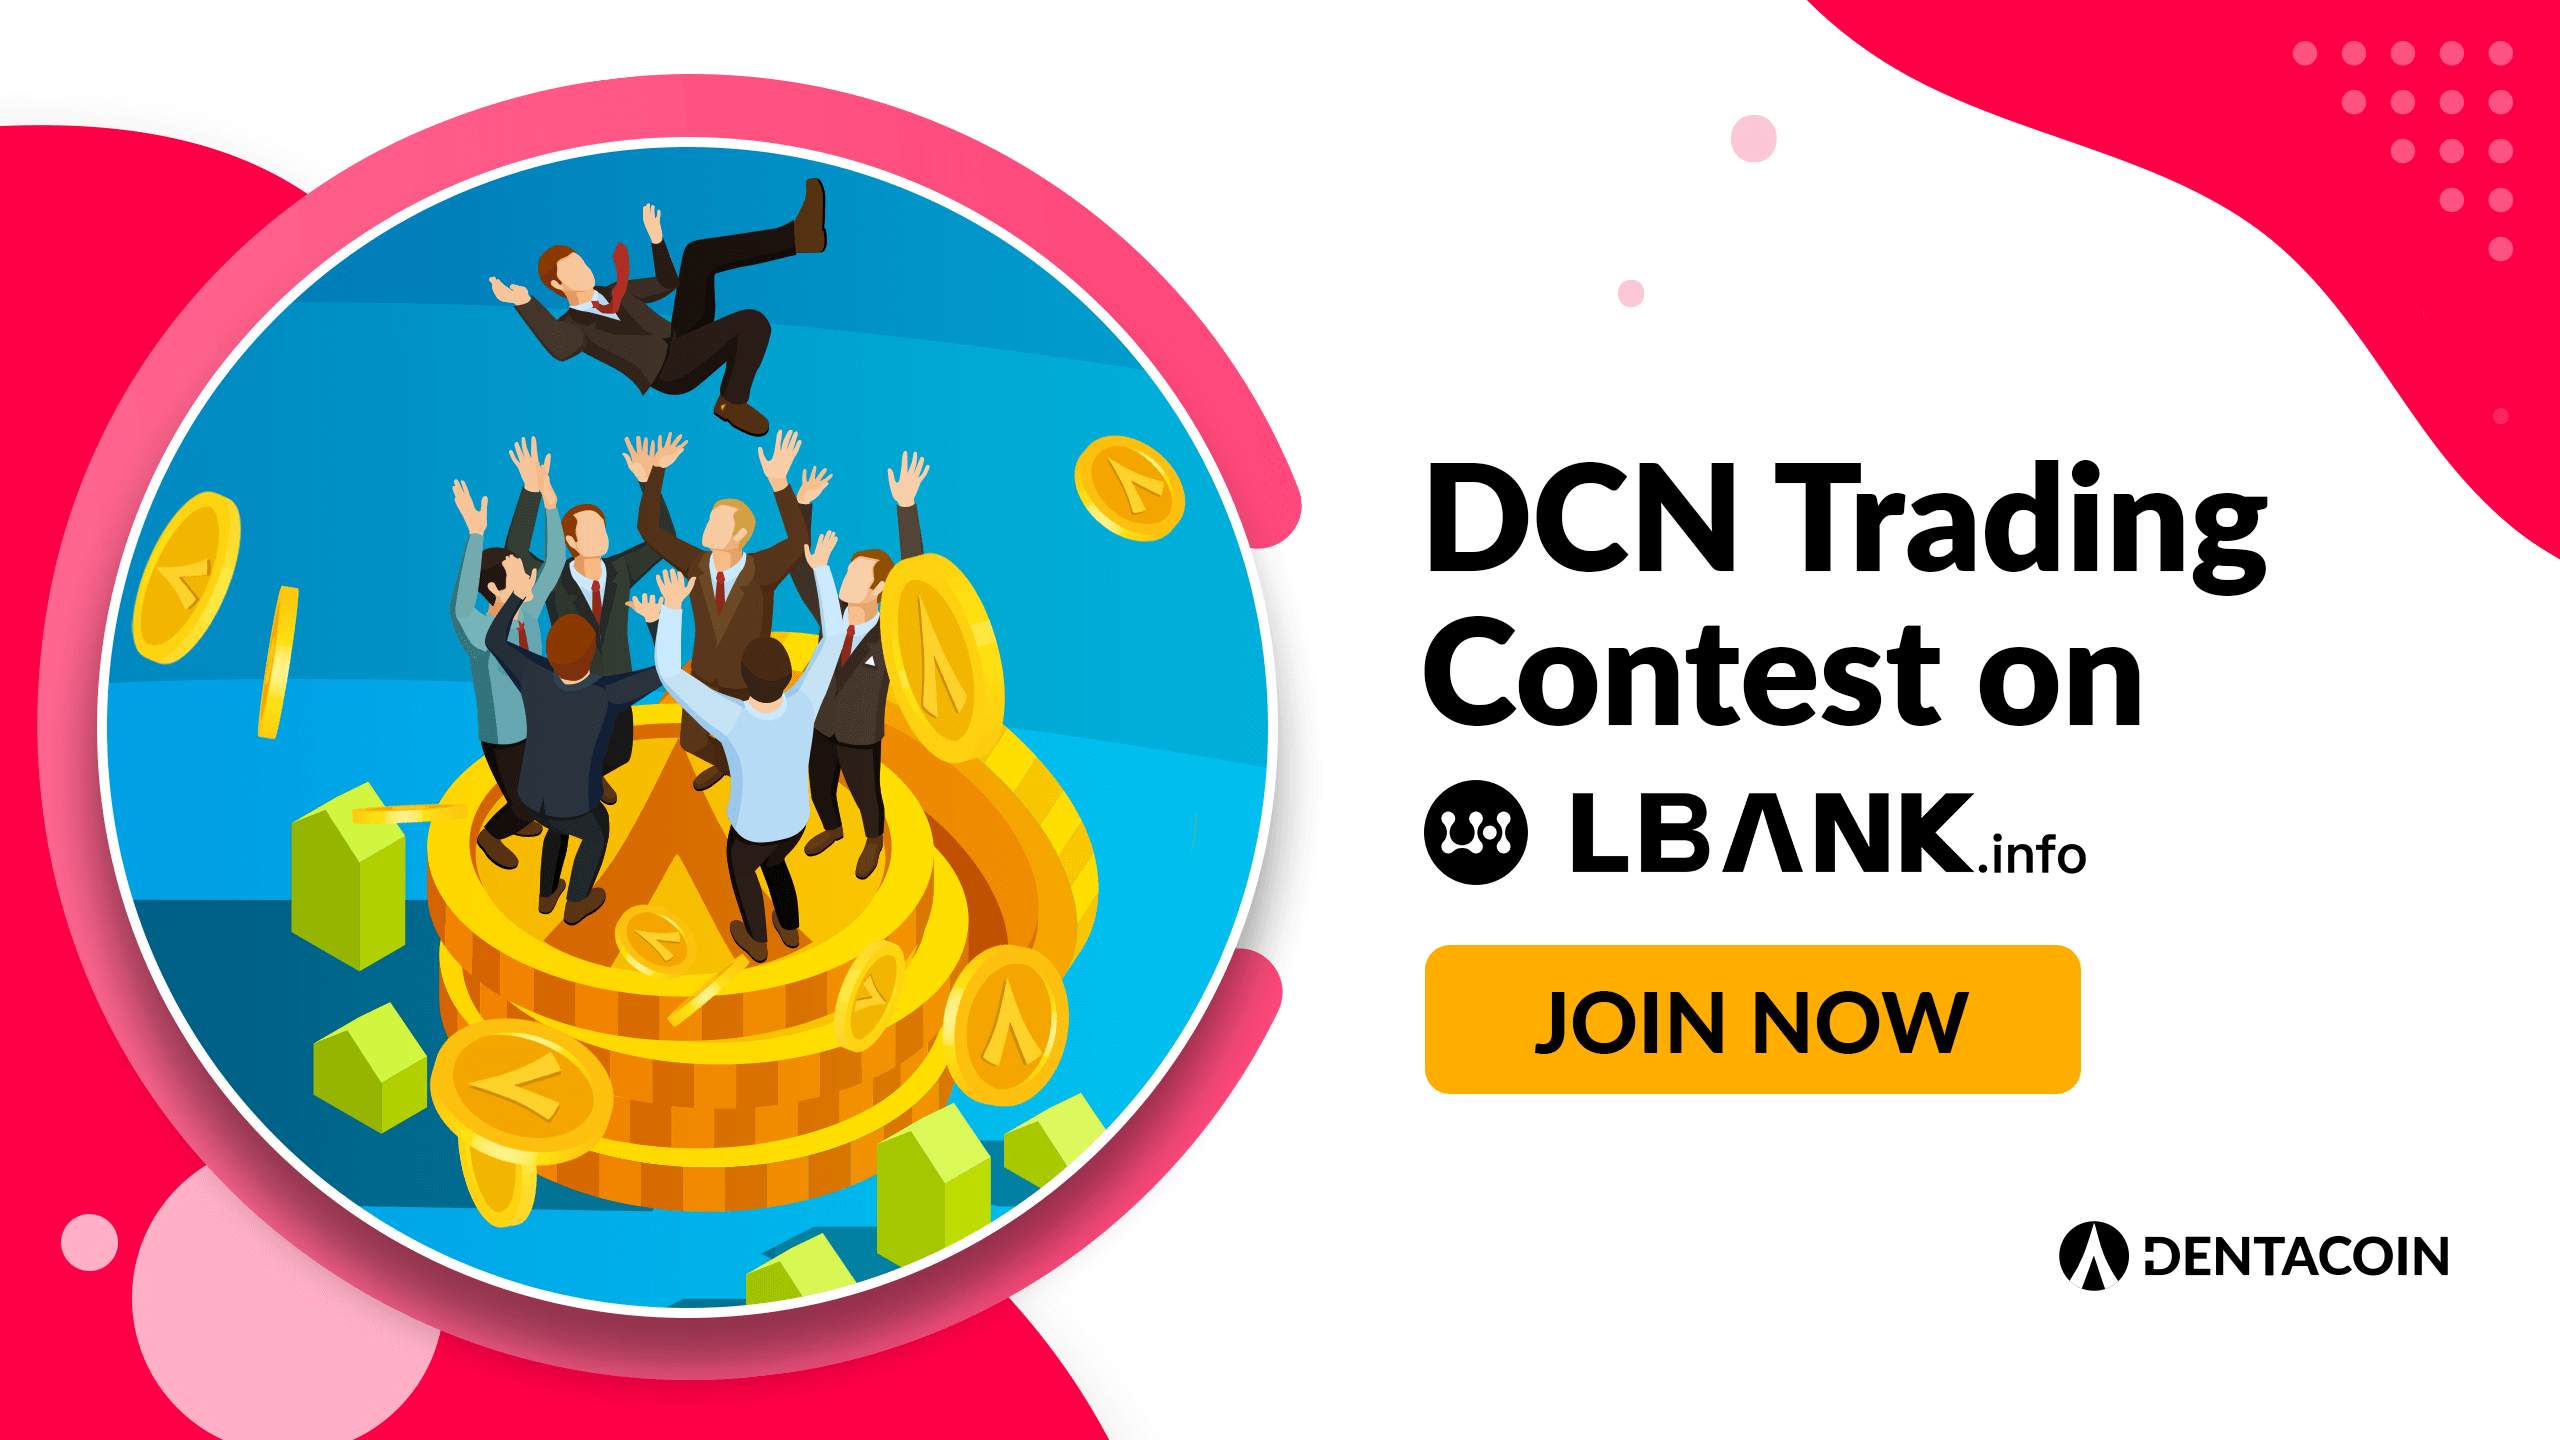 LBank dcn trading contest mail